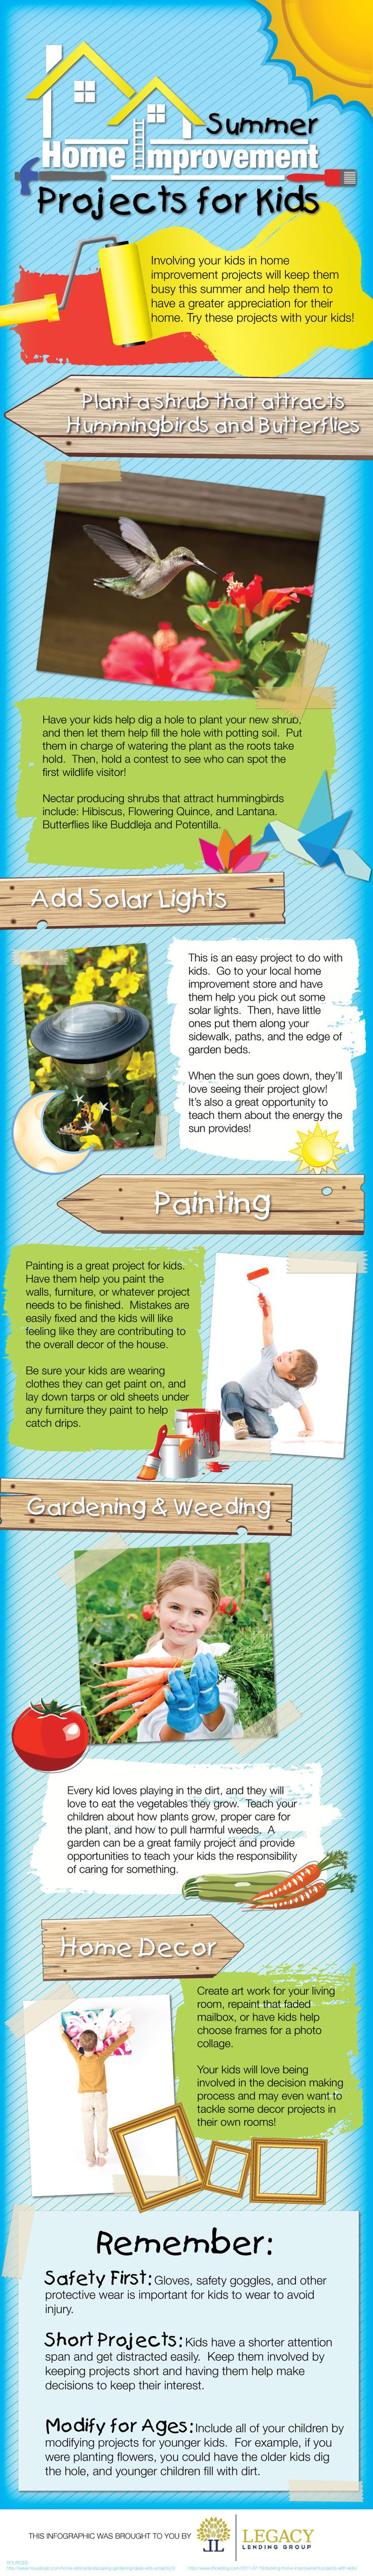 Summer Home Improvement Projects for the Kids by Legacy Lending Group